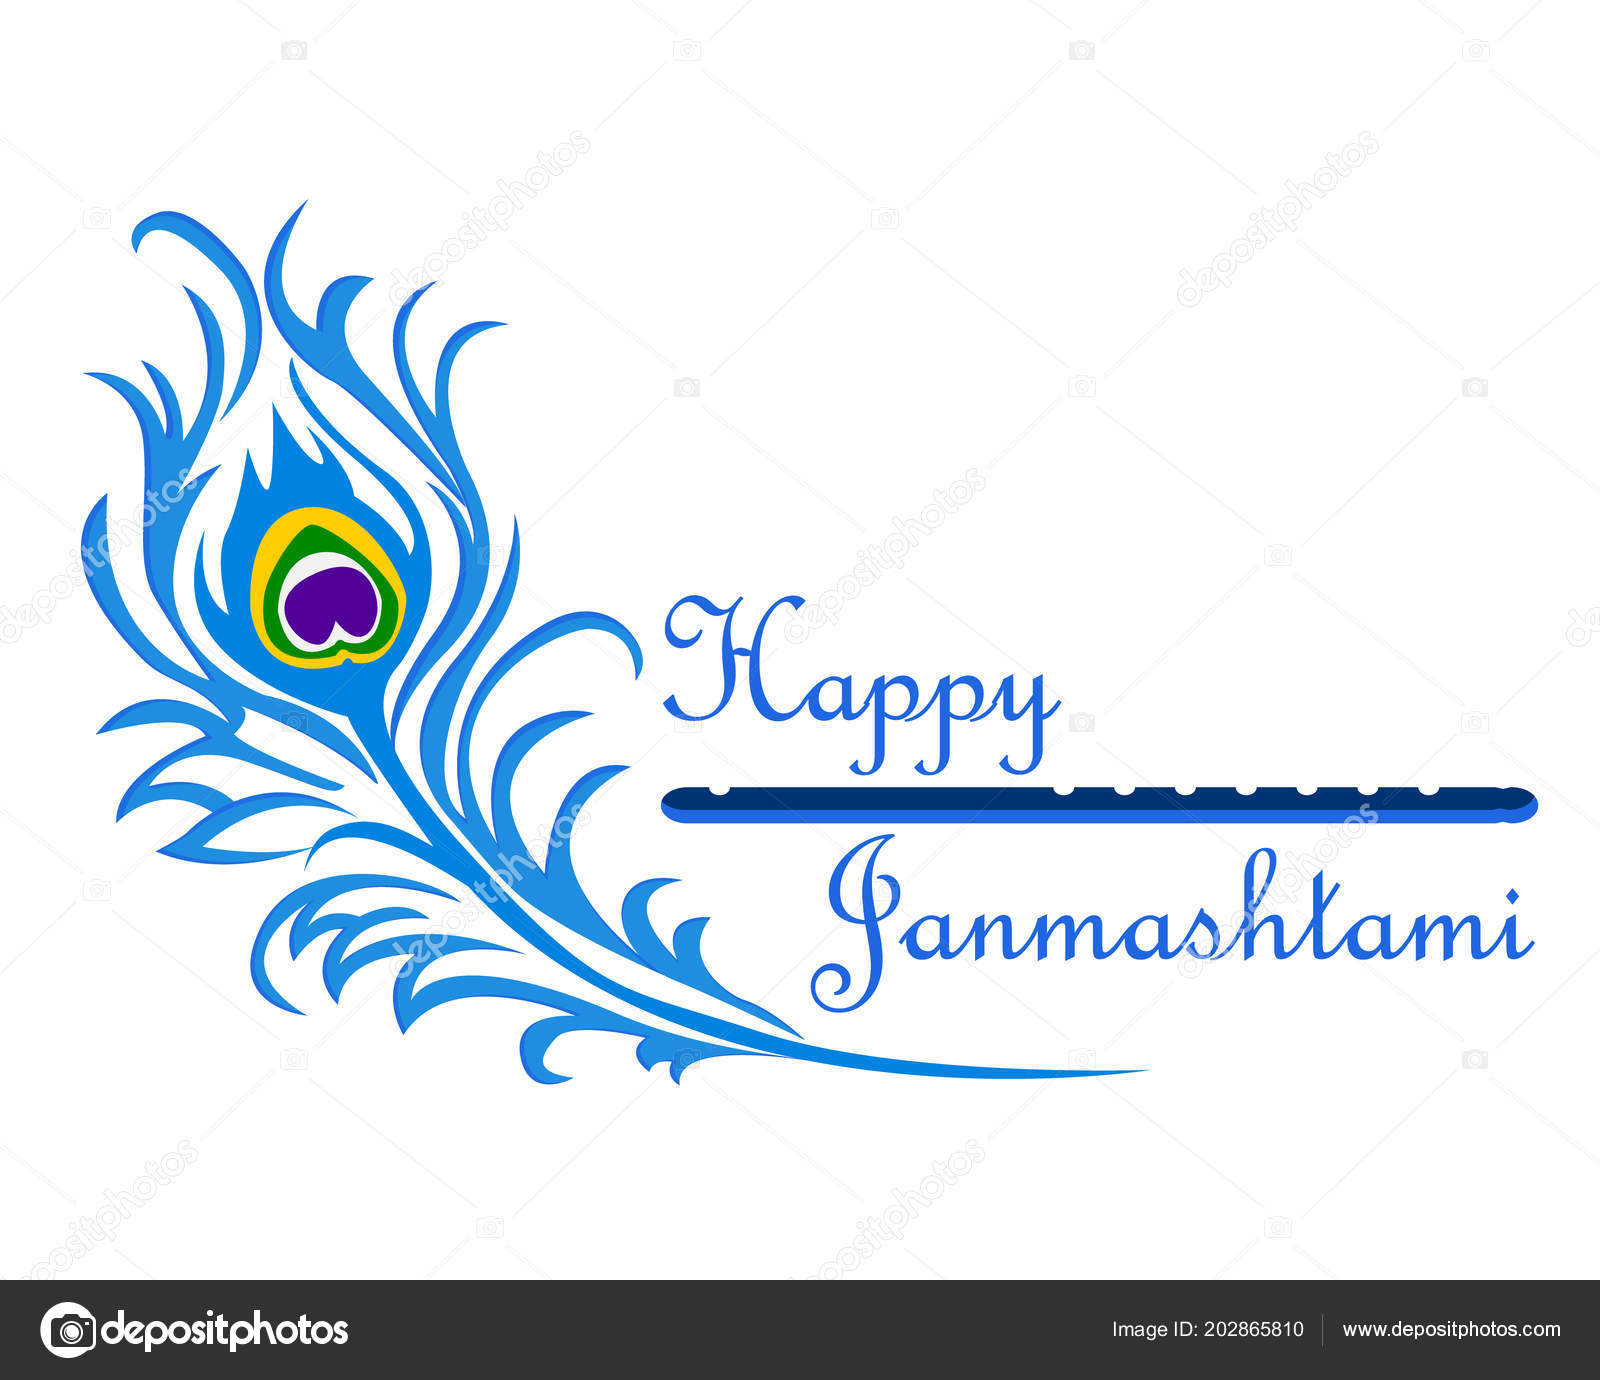 the inscription happy janmashtami with peacock feather and flute